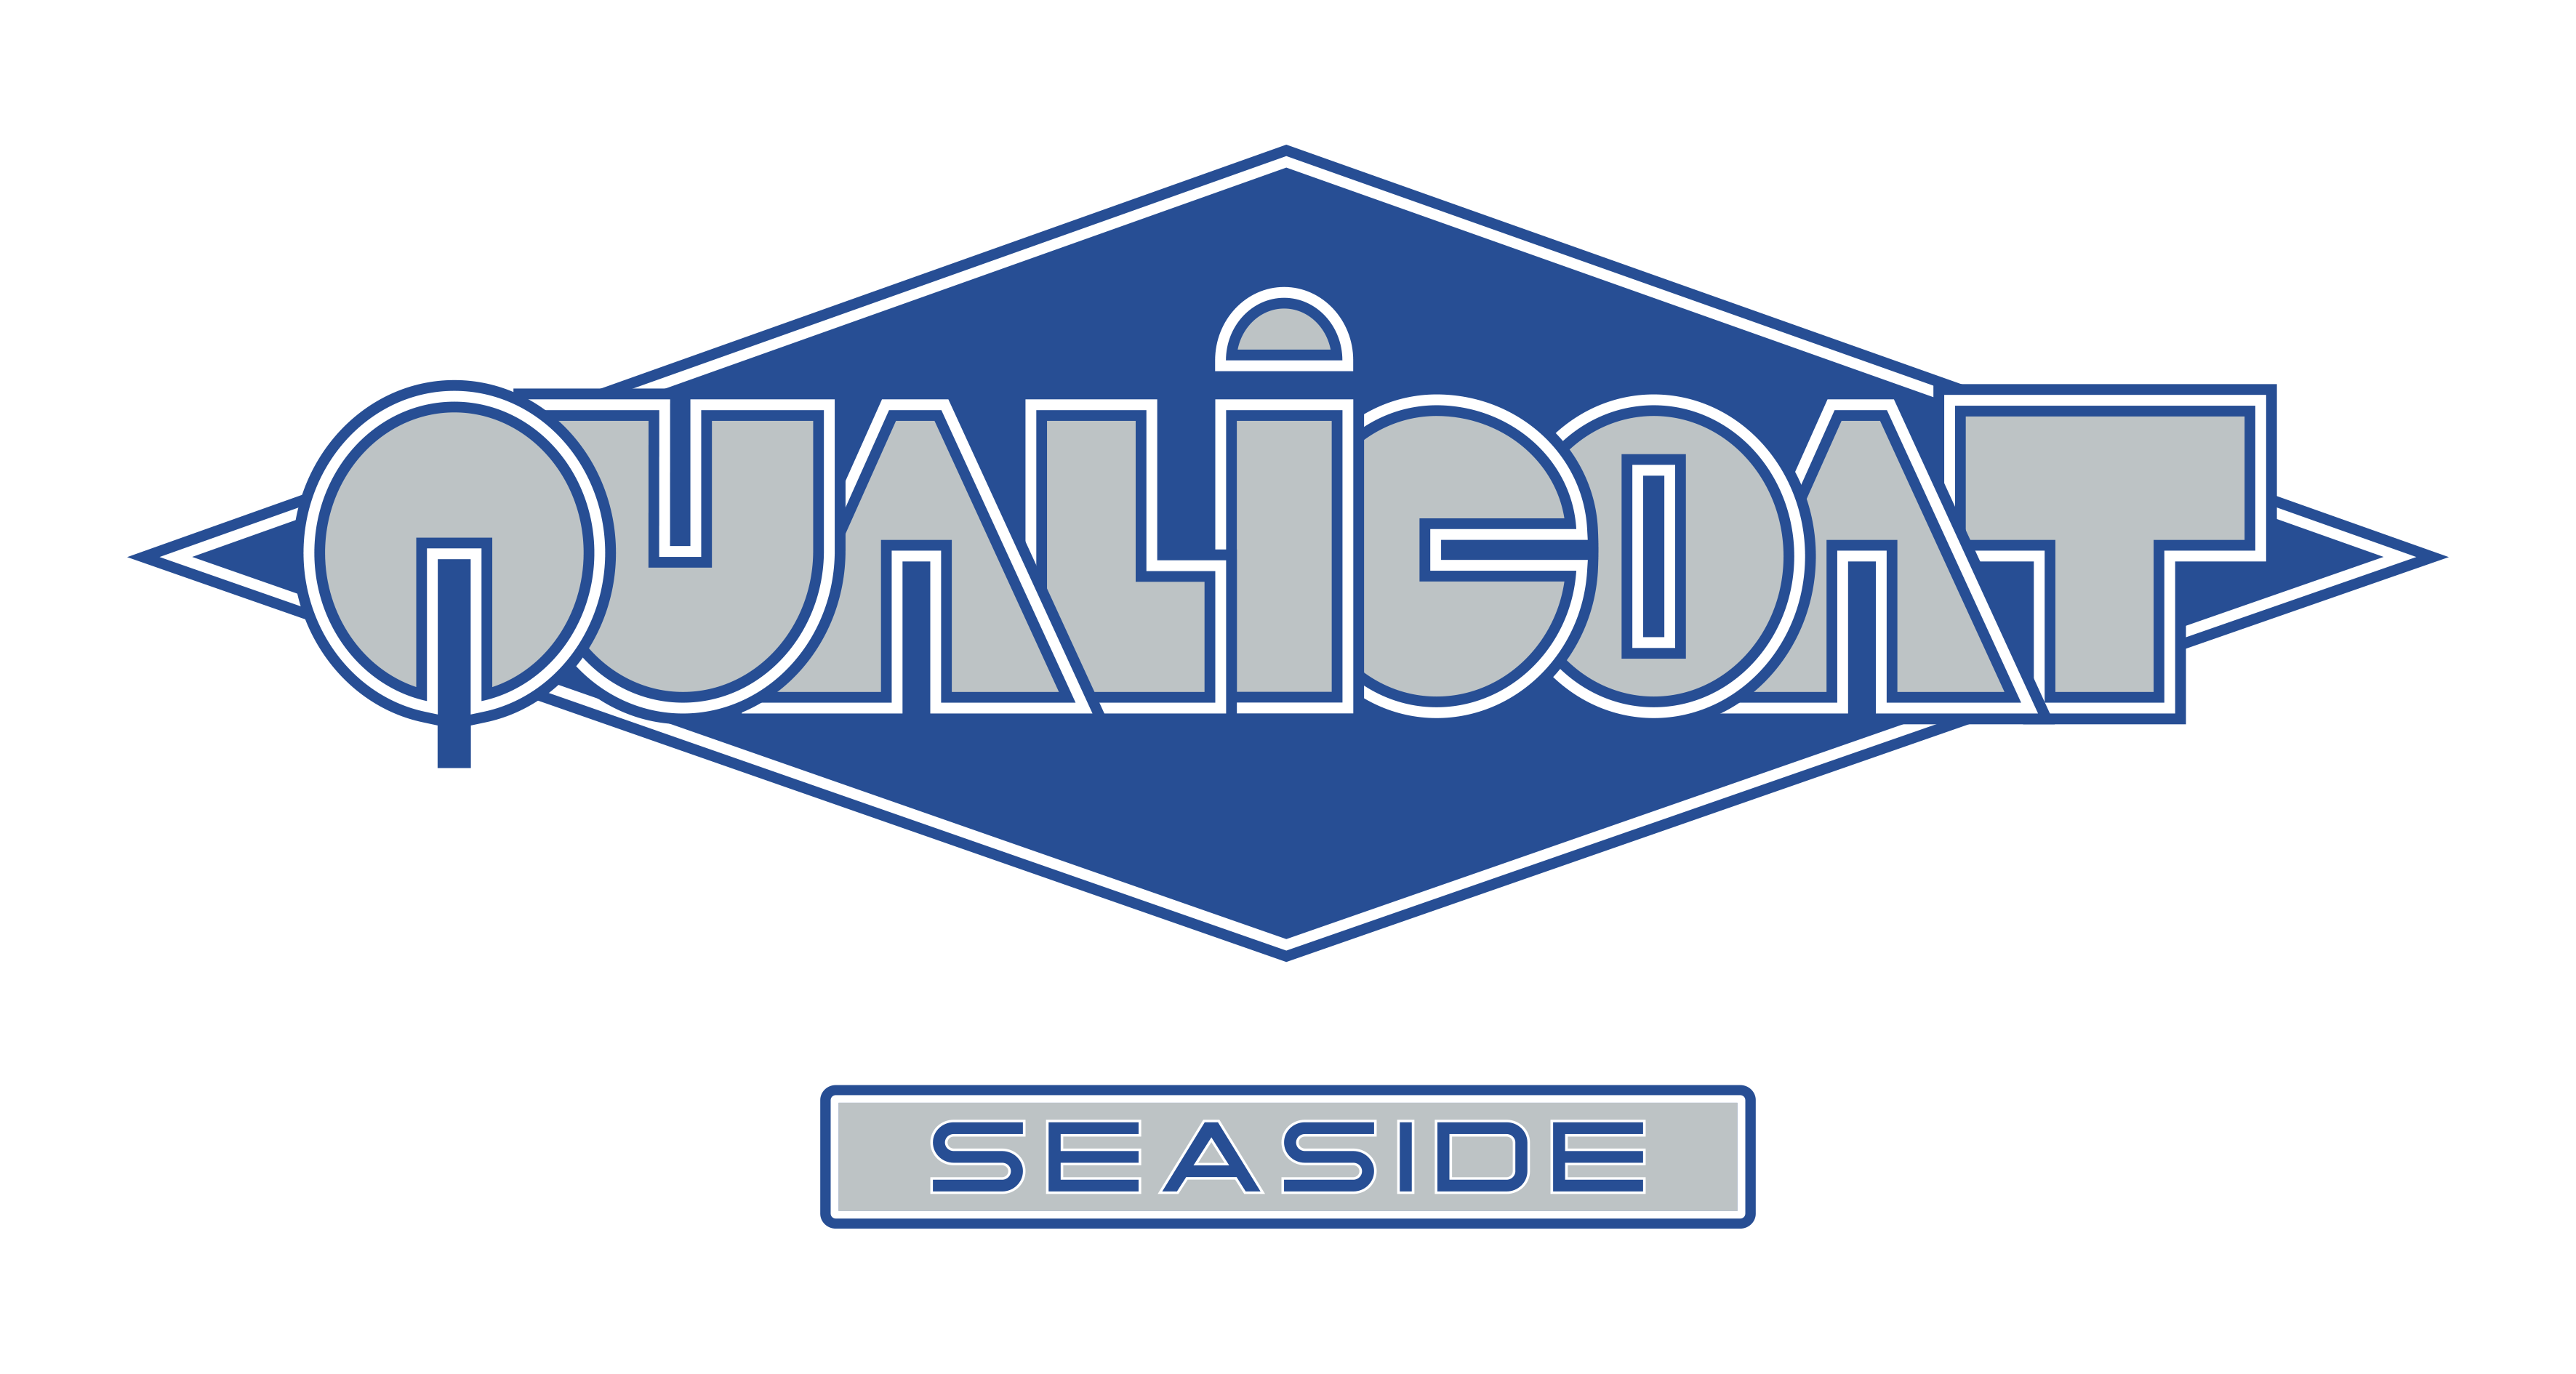 QUALICOAT SEASIDE LOGO RGB 300DPI